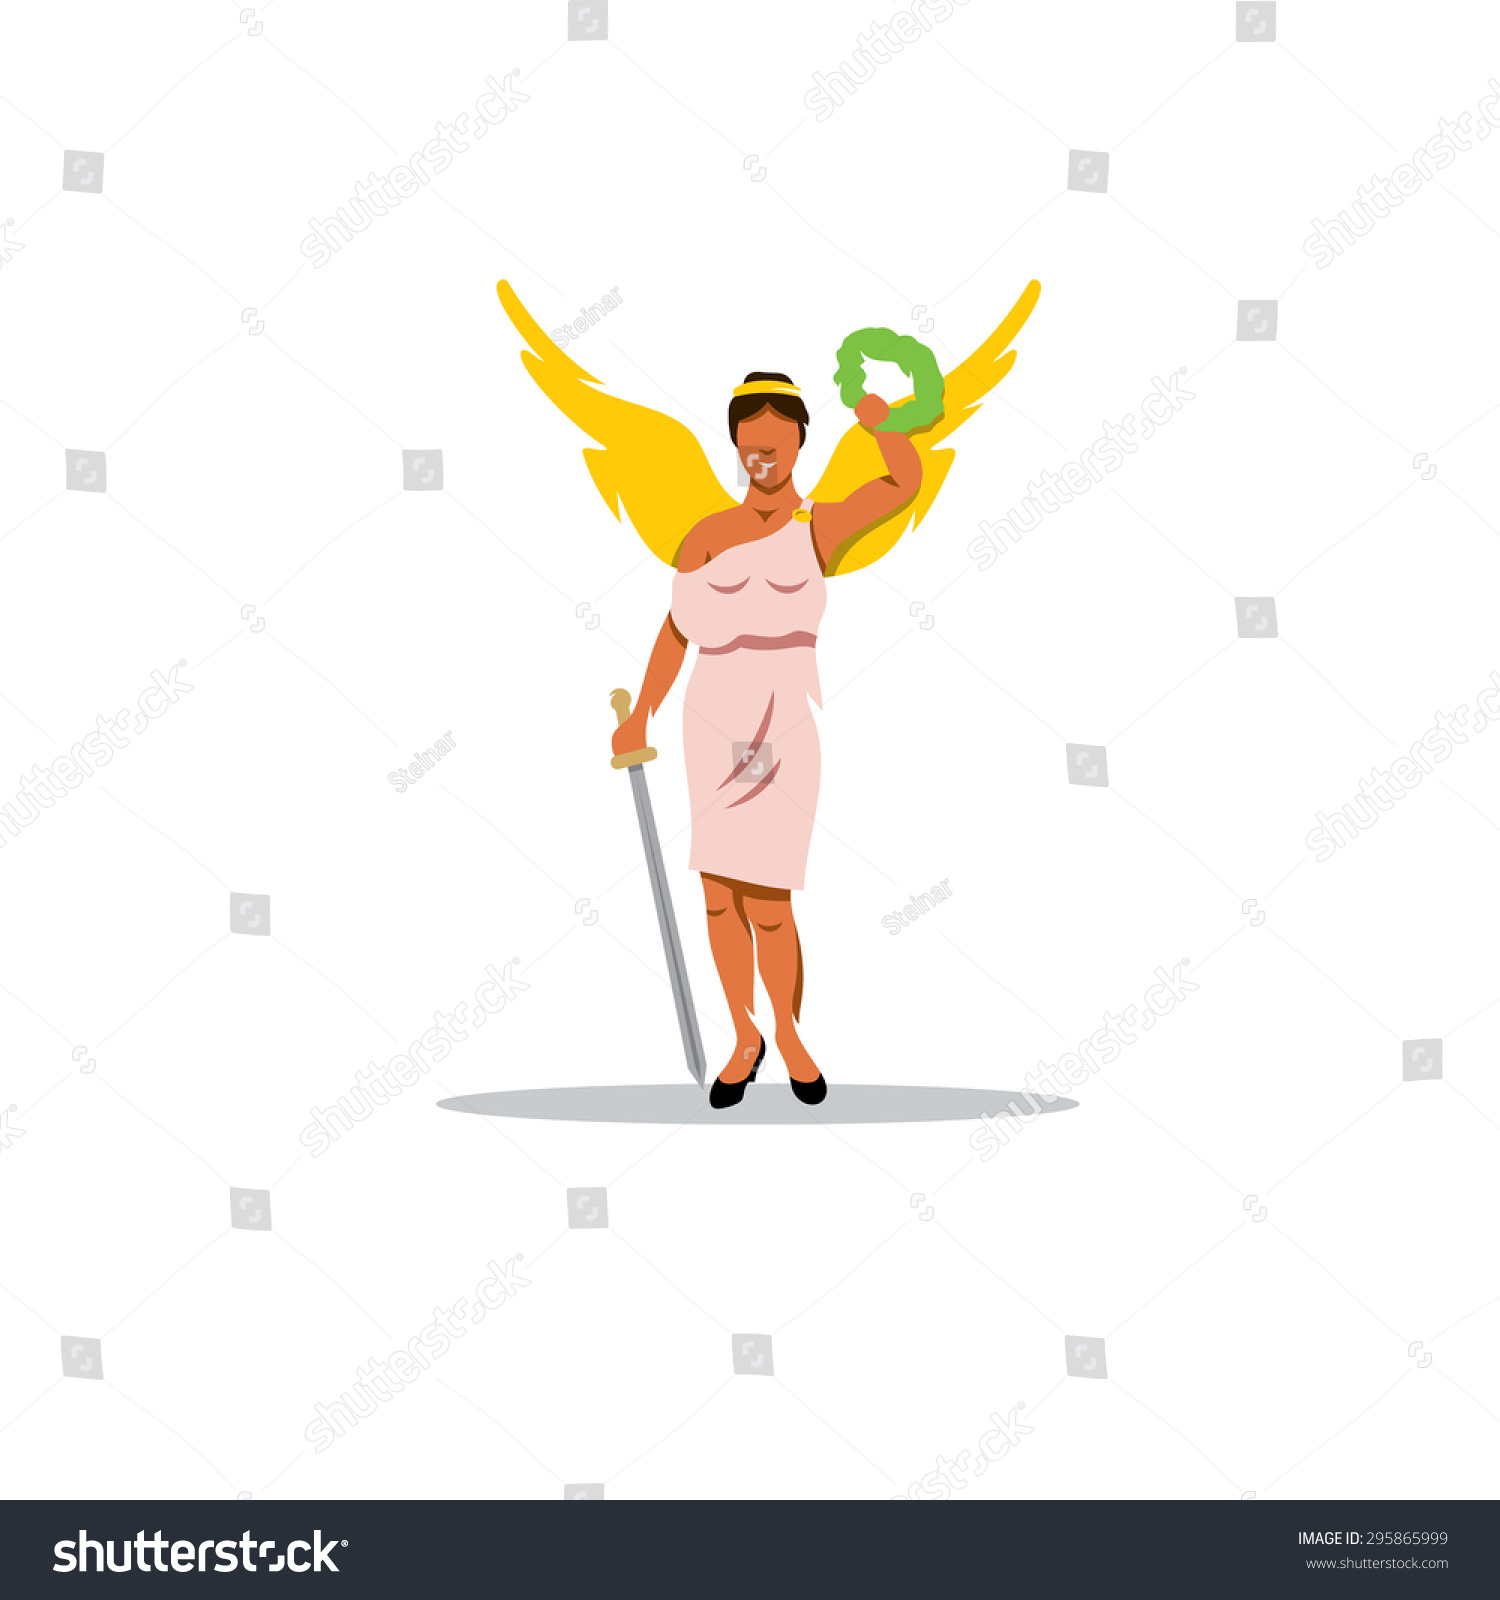 Nike Sign Mythological Greek Goddess Victory Branding 1500x1600